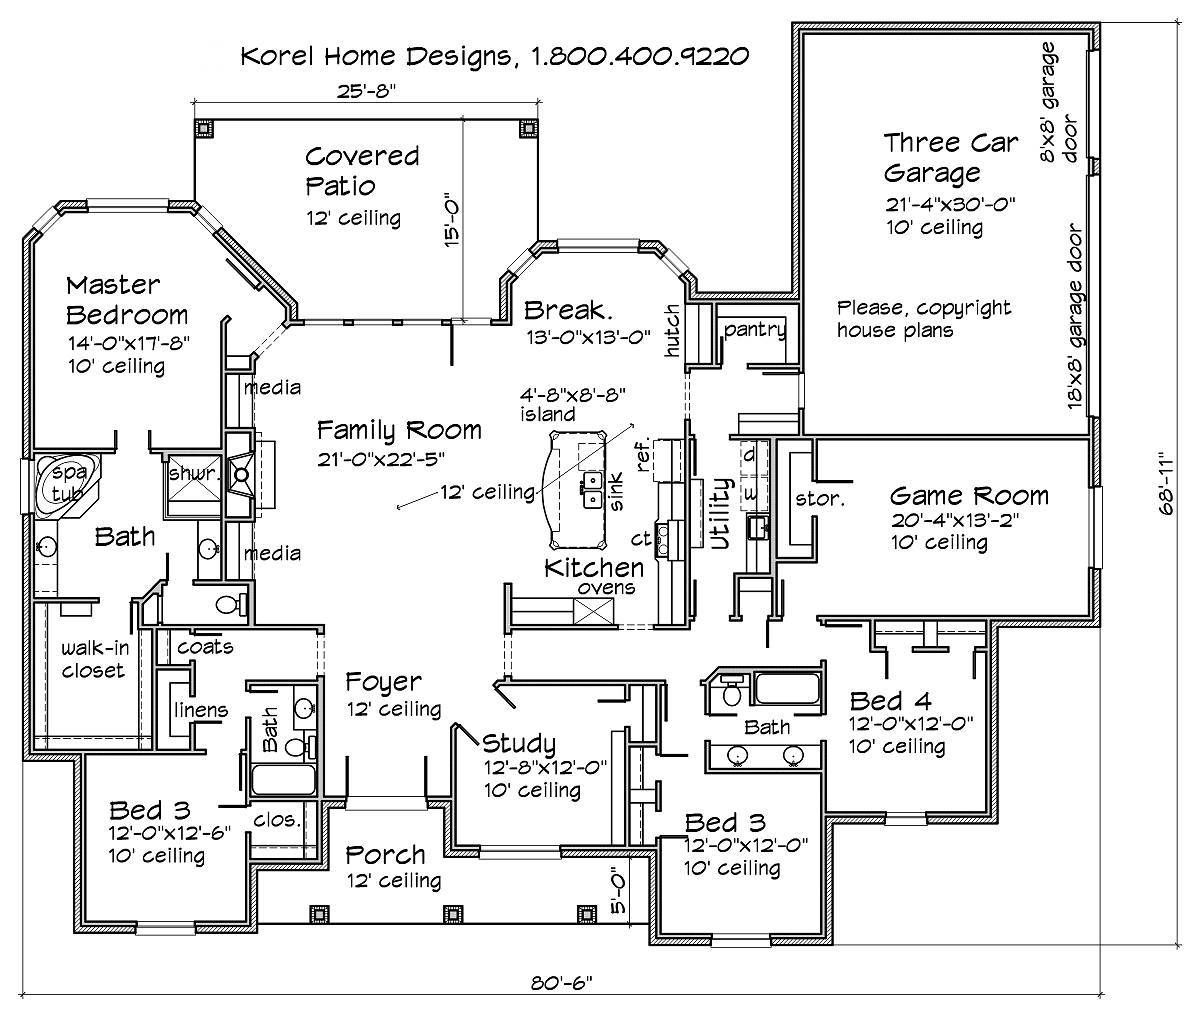 House Plans By Korel Home Designs / Bedroom To Make Into